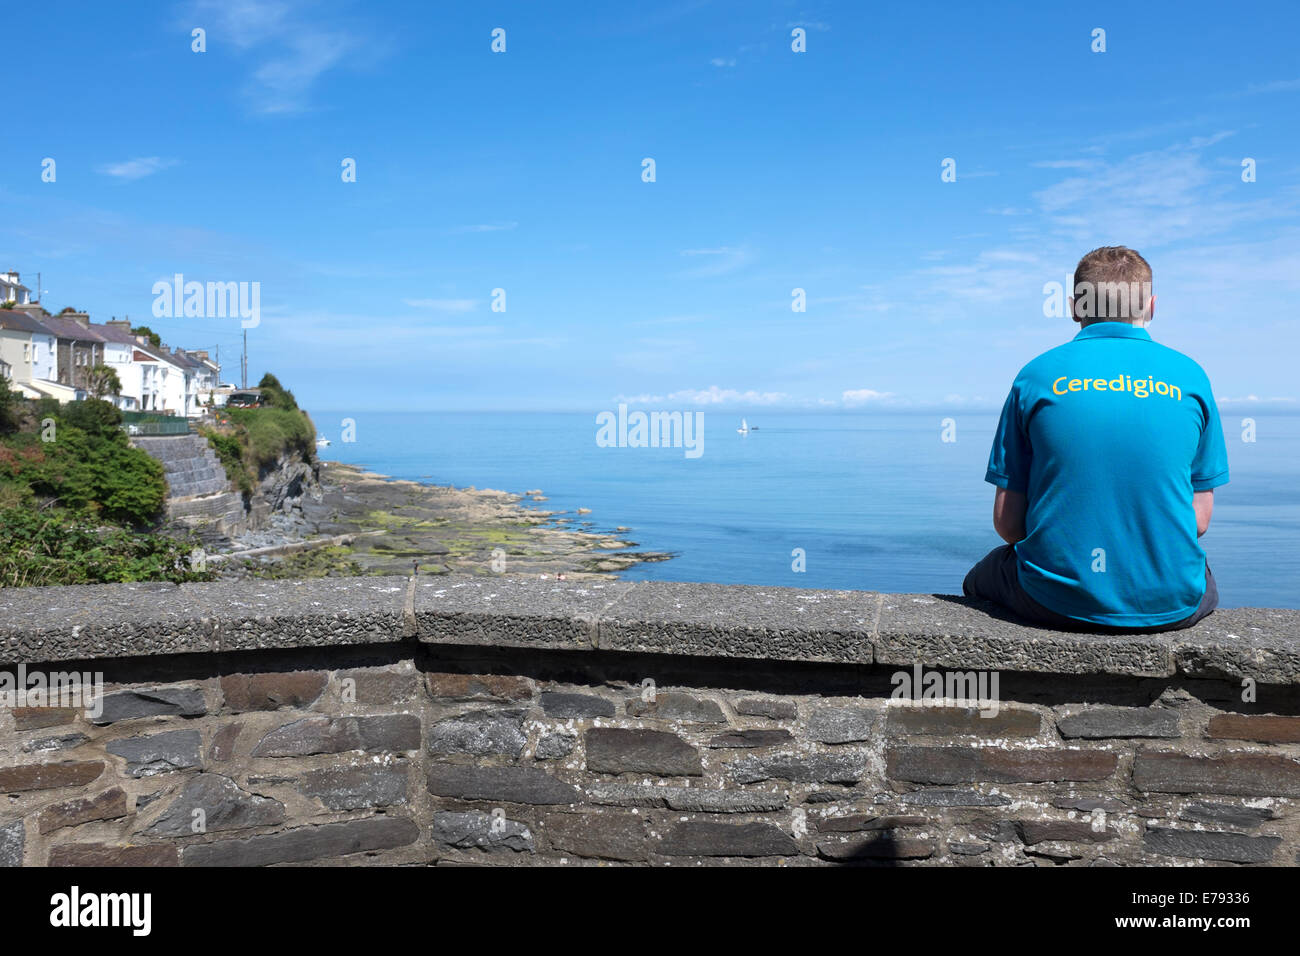 Ceredigion Looking Out To Sea New Quay Wales - Stock Image